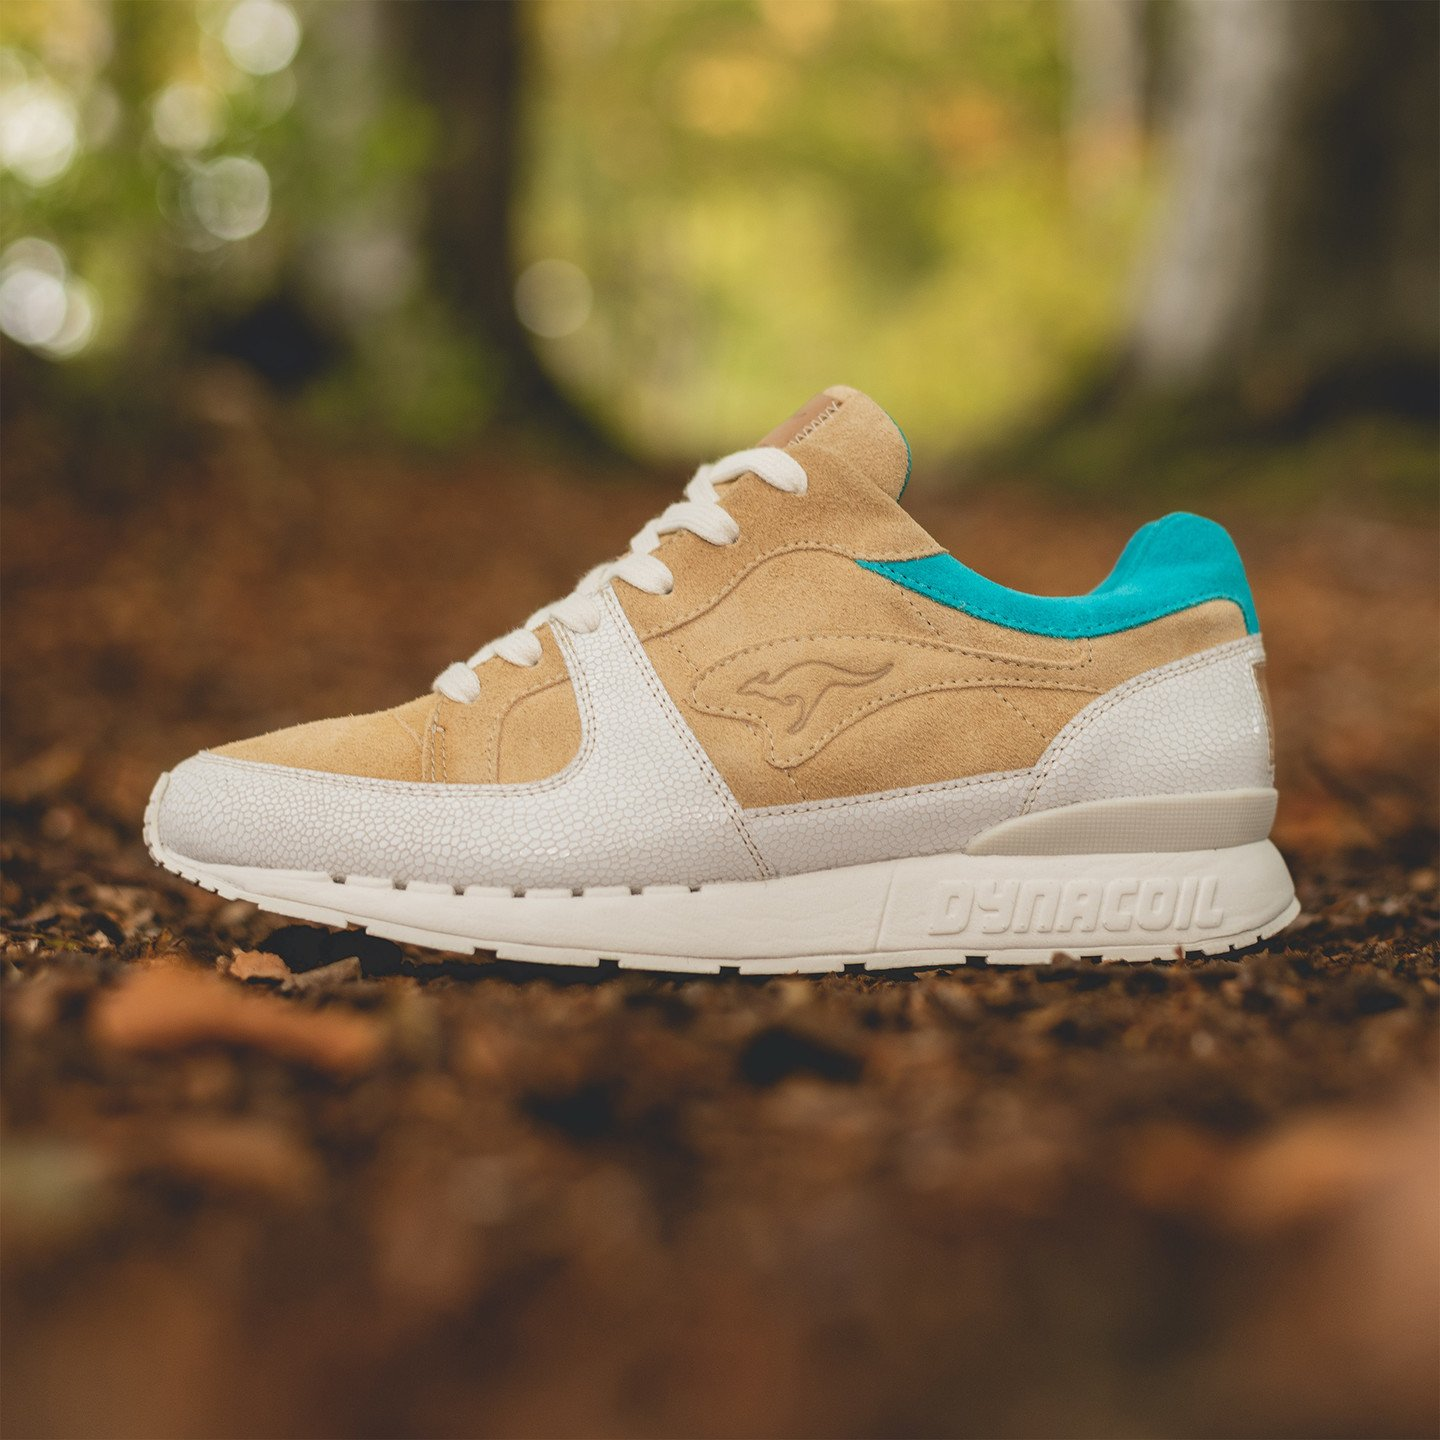 96cd75e5f KangaROOS Coil-R1 x Hanon  Moonshine  - Made in Germany Sand   Off